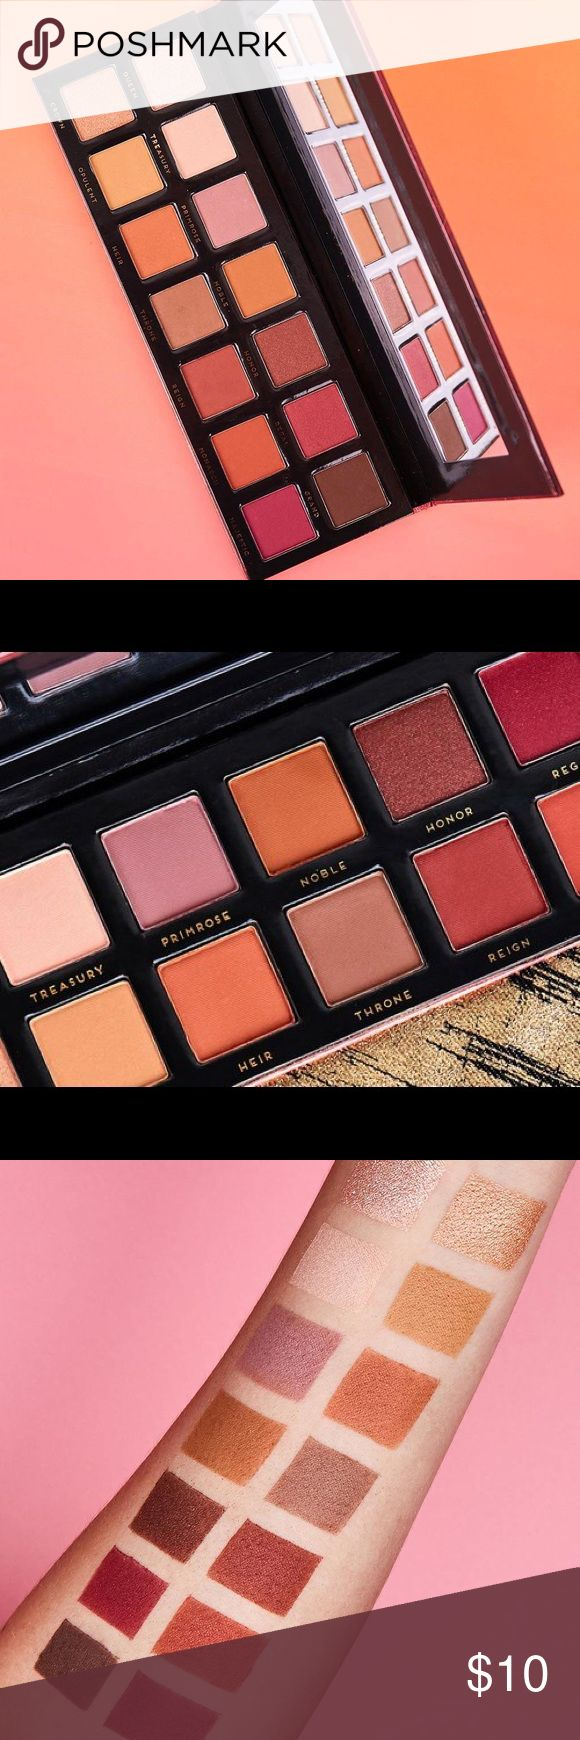 Bad Habit Royals Eyeshadow Palette Eyeshadow palette